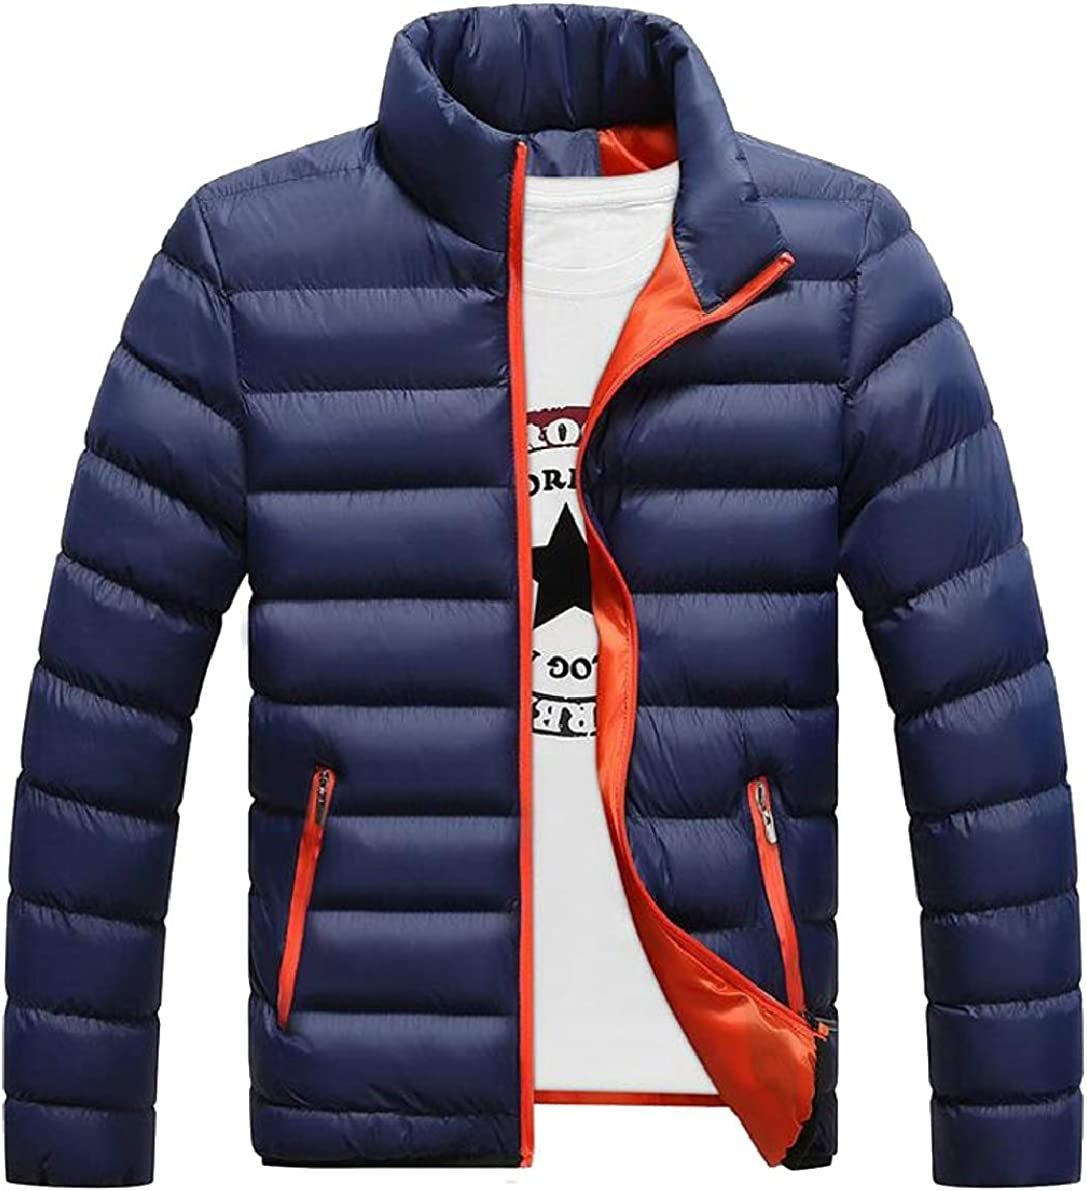 ONTBYB Mens Winter Casual Slim Thick Light Weight Stand Collar Packable Down Jacket